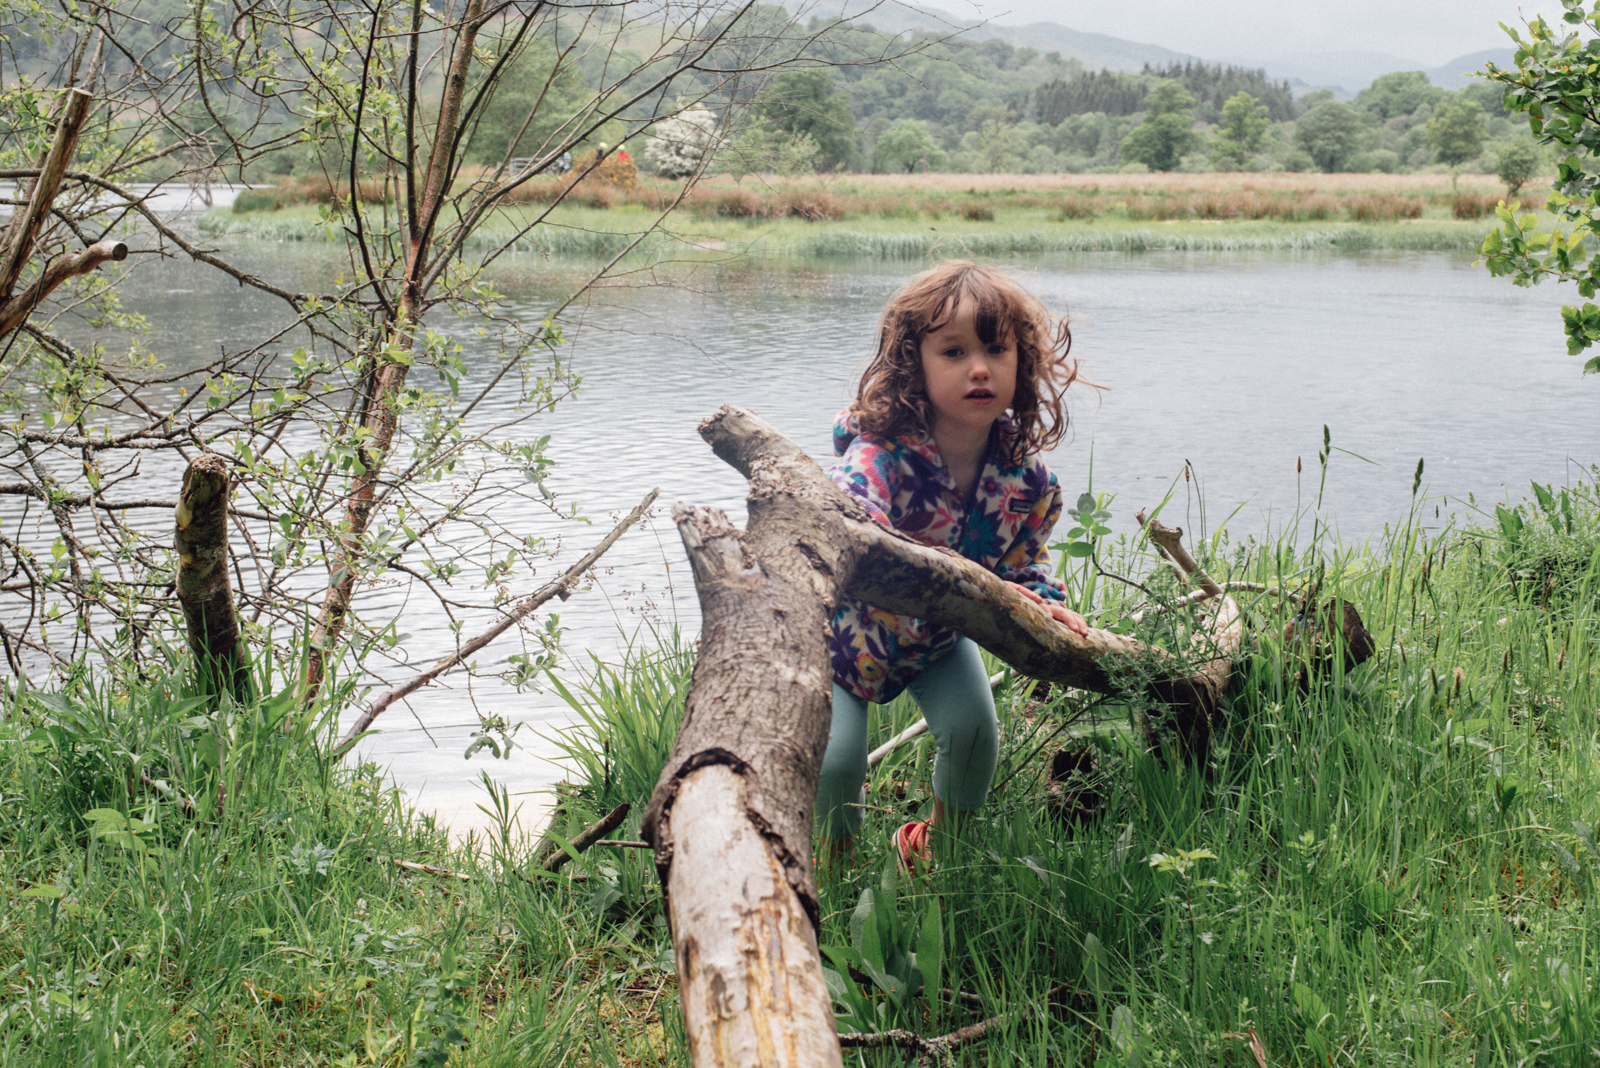 (Writing this blog has been a great prompt to me to order another photobook of a magic weekend we spent on Loch Tay in June - canoeing and adventures with the kids to an uninhabited island with beavers … and hot chocolate… I hope you enjoyed seeing my family snaps too)…